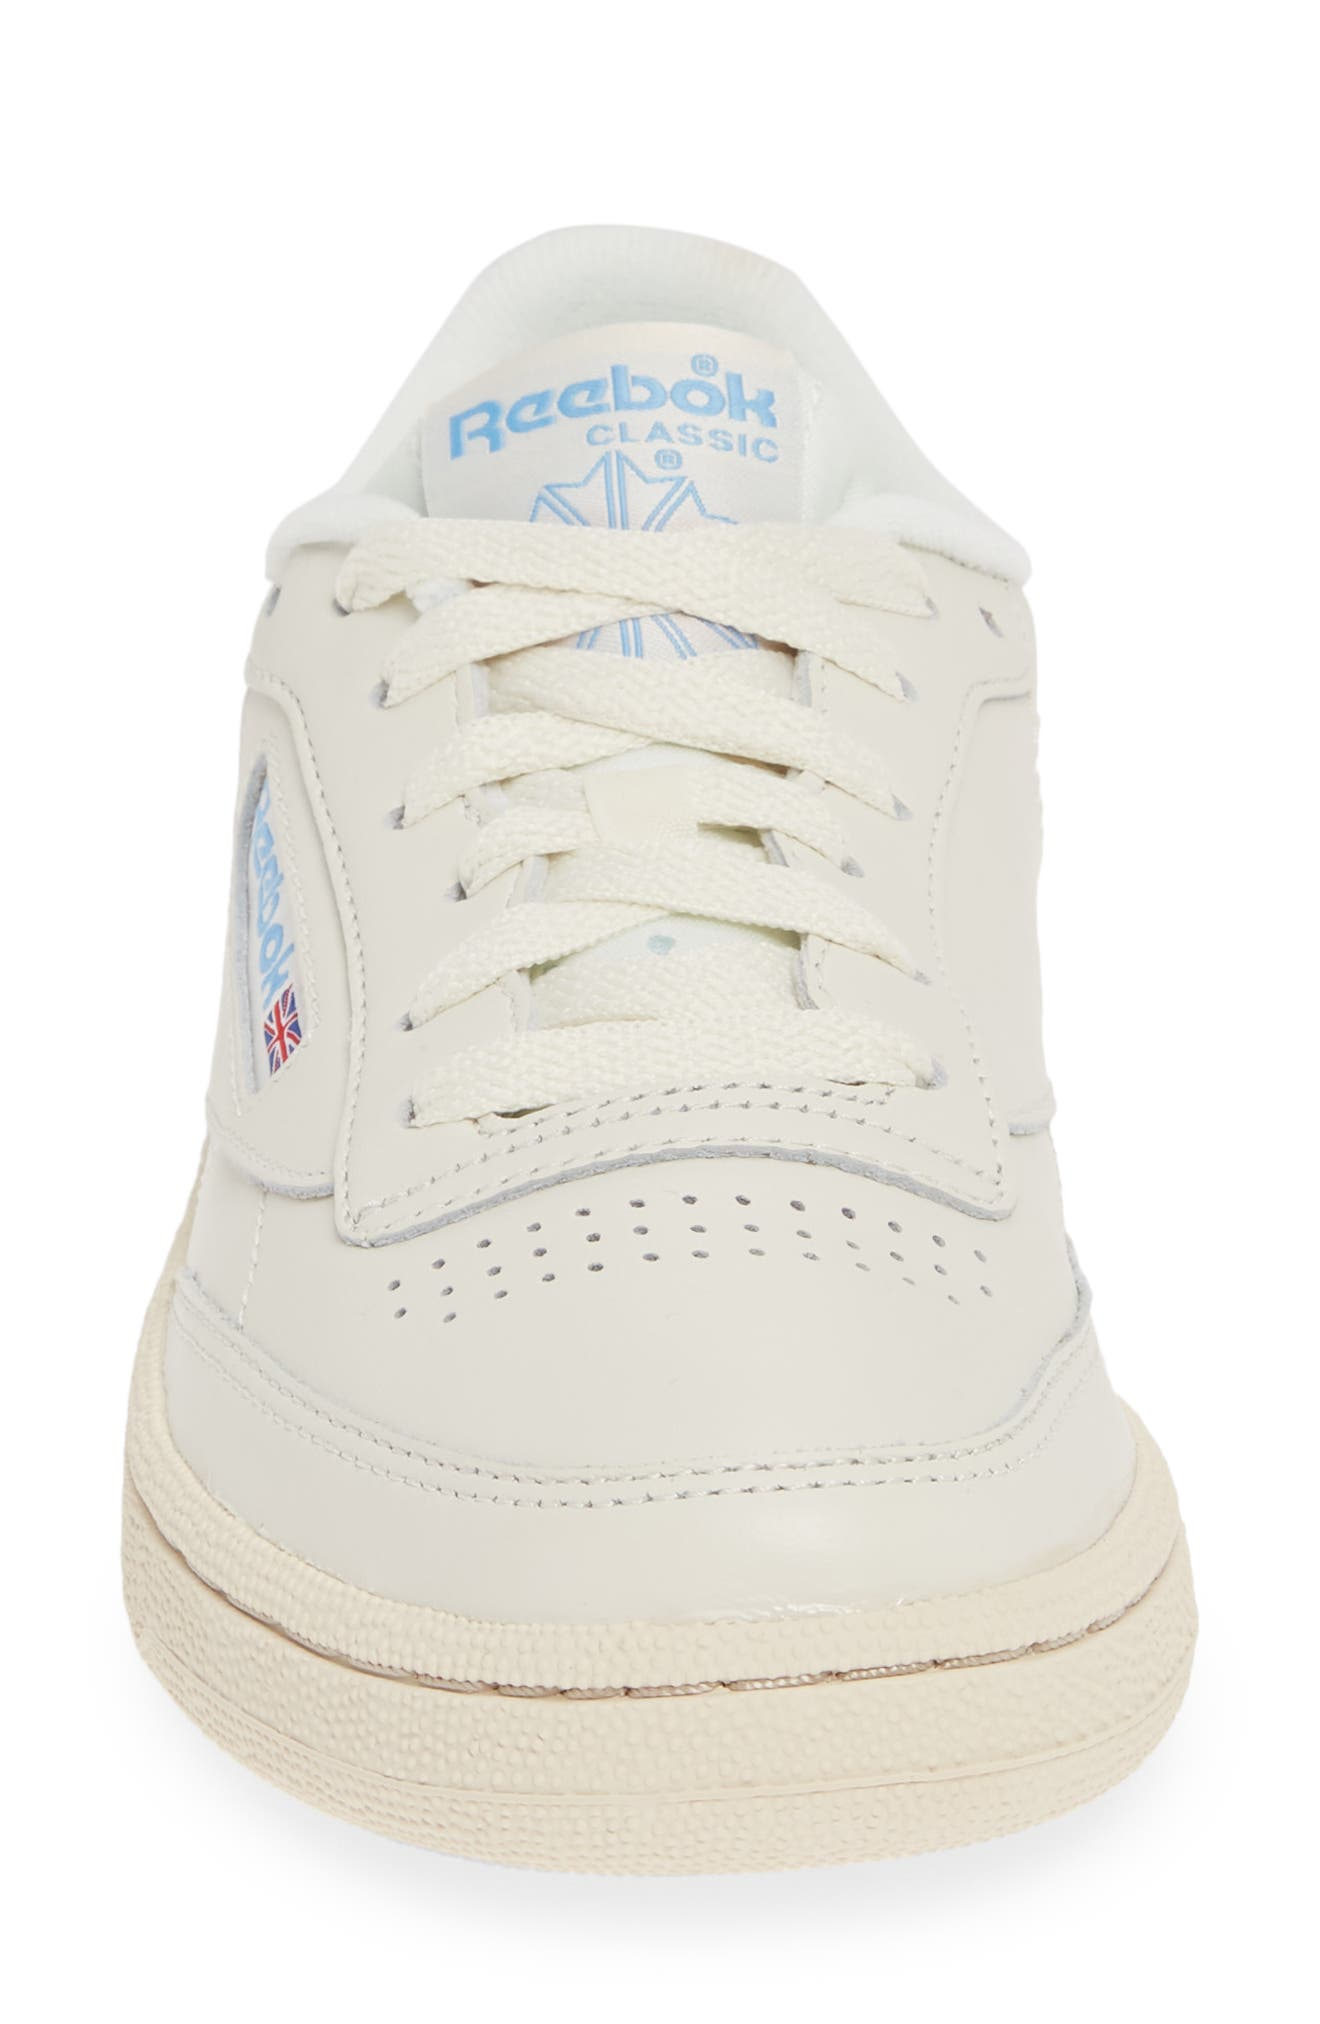 REEBOK, Club C 85 Sneaker, Alternate thumbnail 4, color, CHALK/ PAPERWHITE/ BLUE